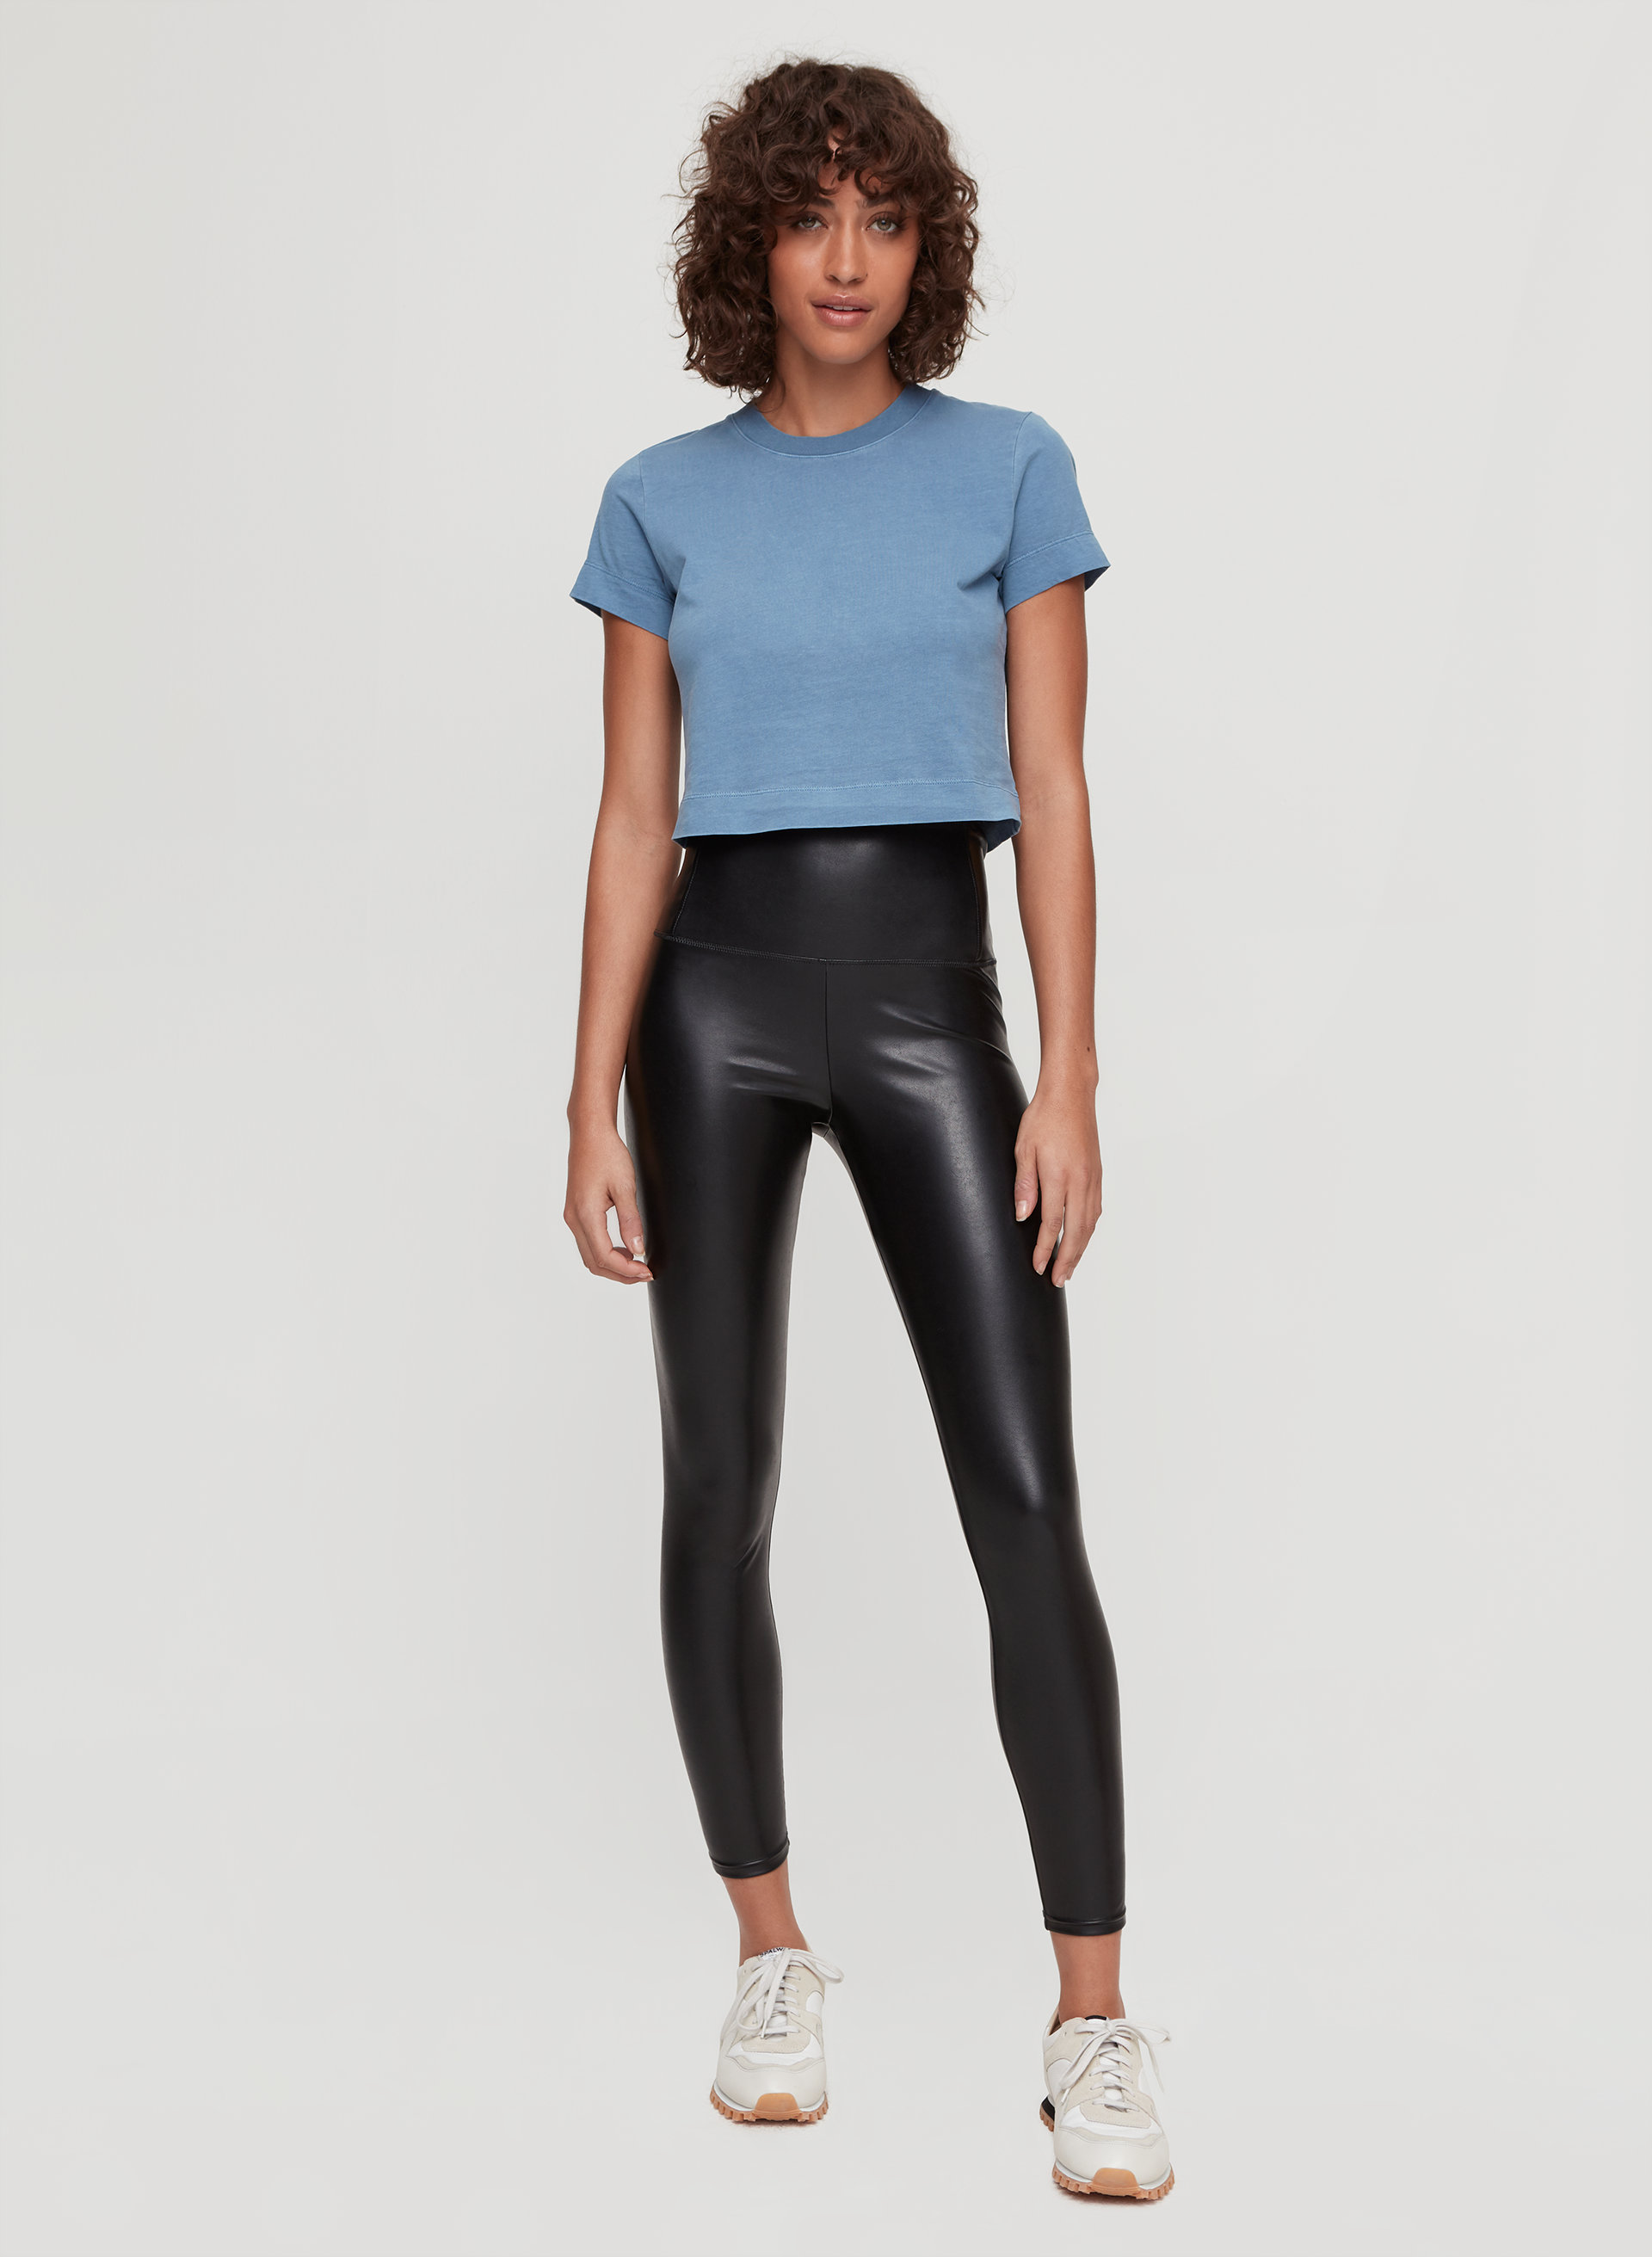 bffbbcd3991aef daria ankle pant Cropped, faux-leather legging